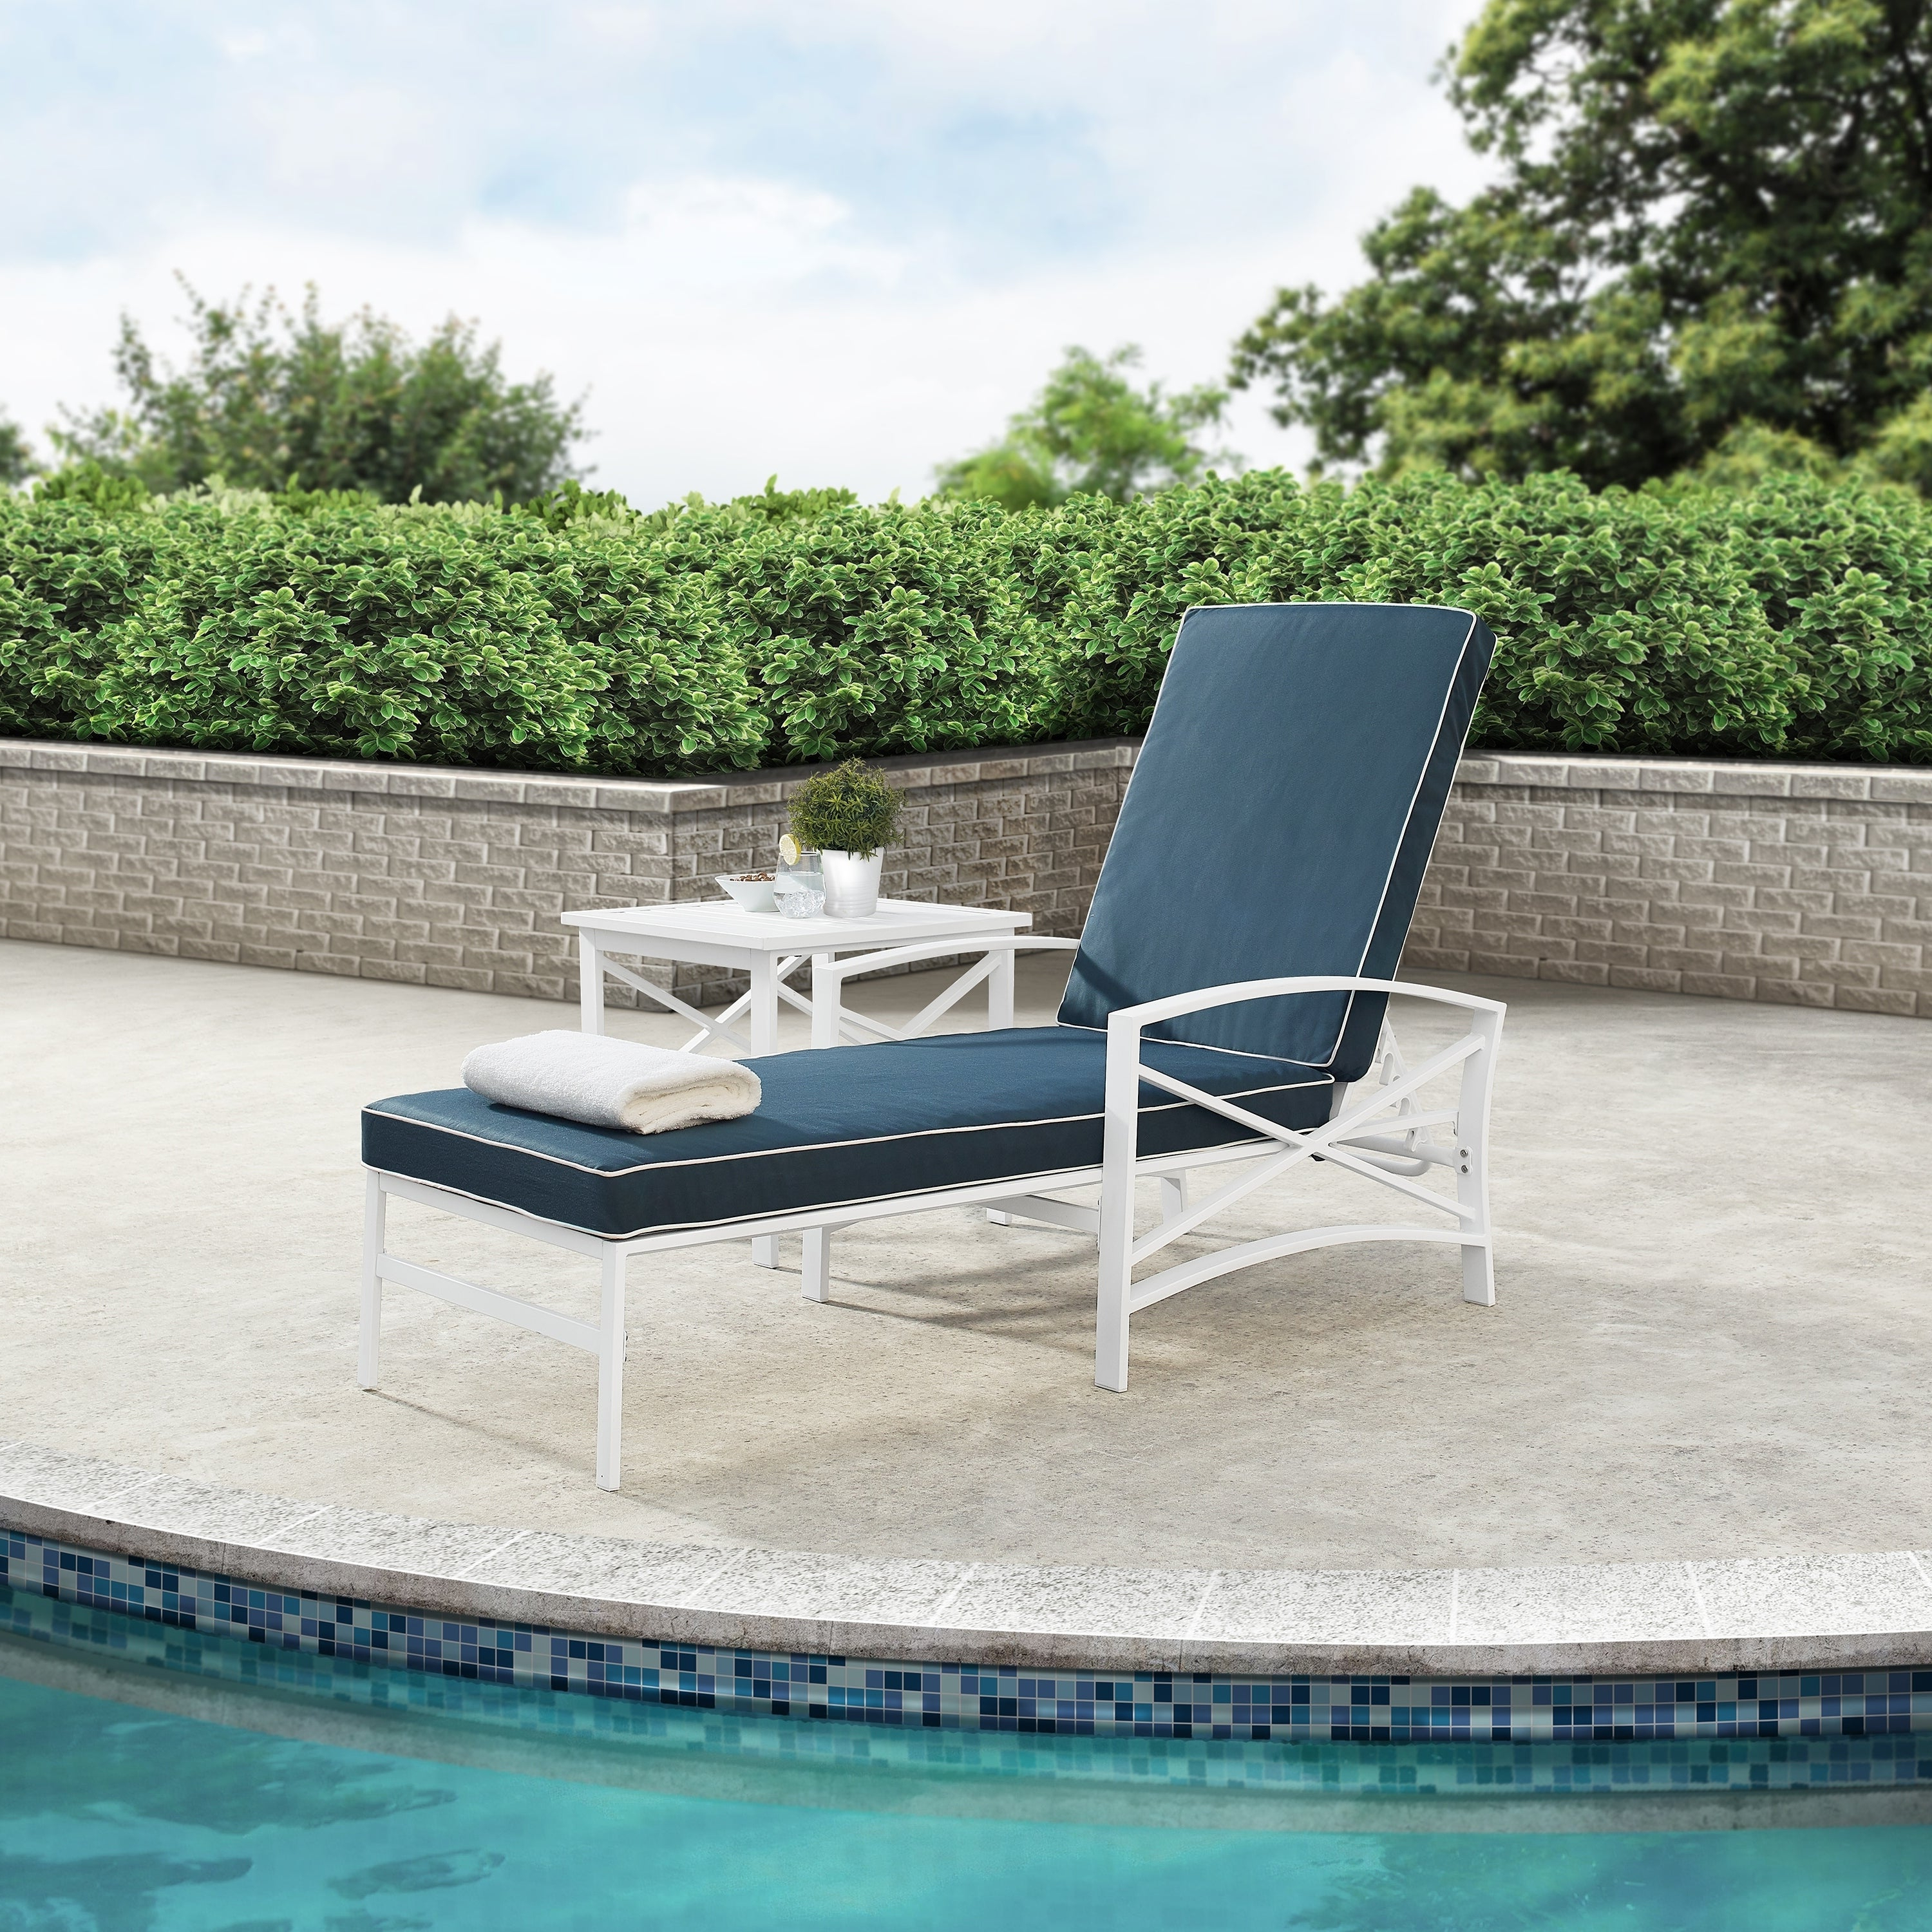 Chaise Lounge Chairs In White With Navy Cushions Pertaining To Most Recent Havenside Home Davis Chaise Lounge Chair In White With Navy Cushions (View 4 of 25)